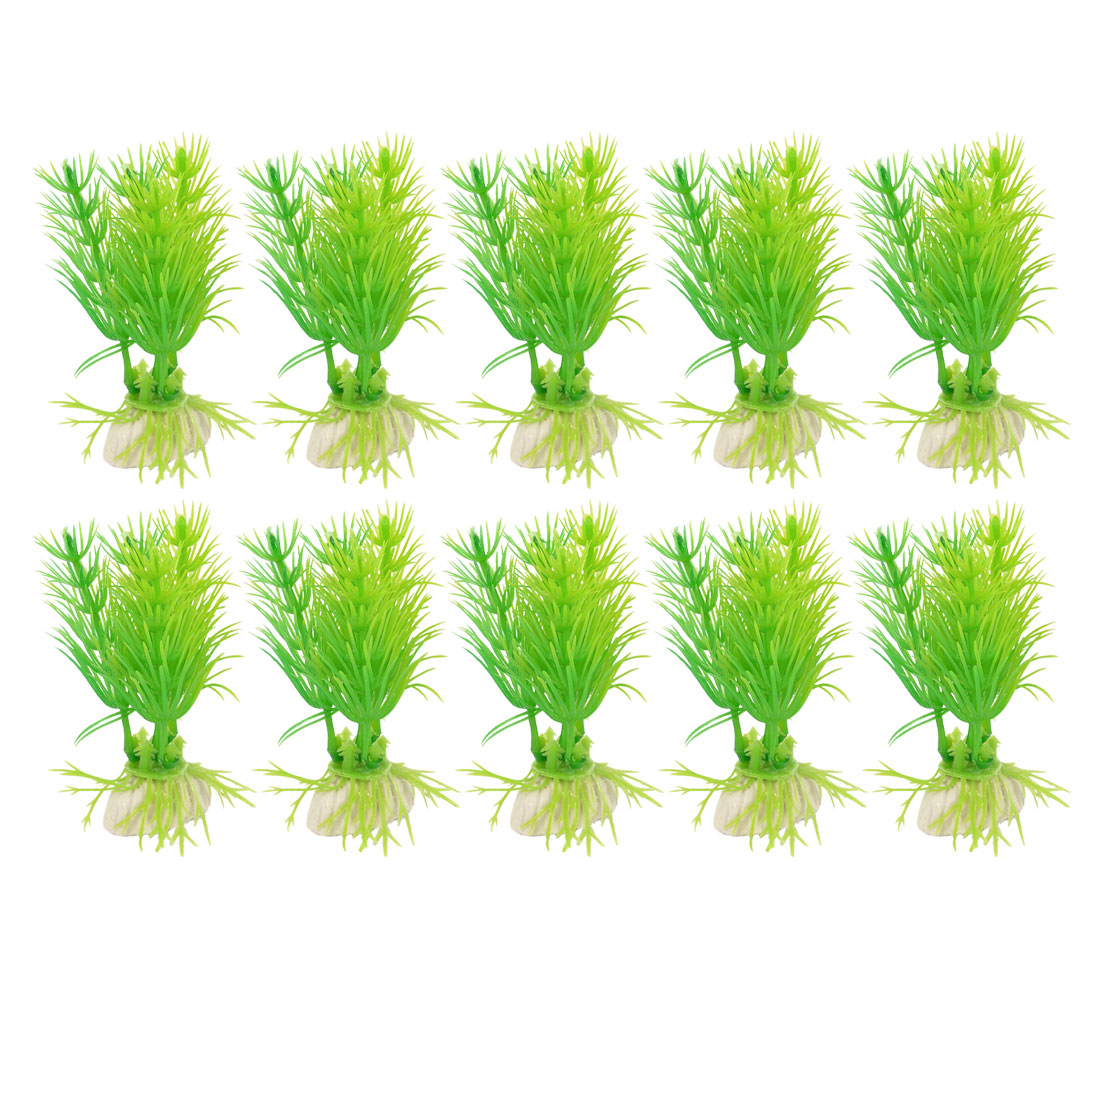 "Aquarium Green Plastic Aquatic Plants Ornament 3.1"" Height 10 Pcs"